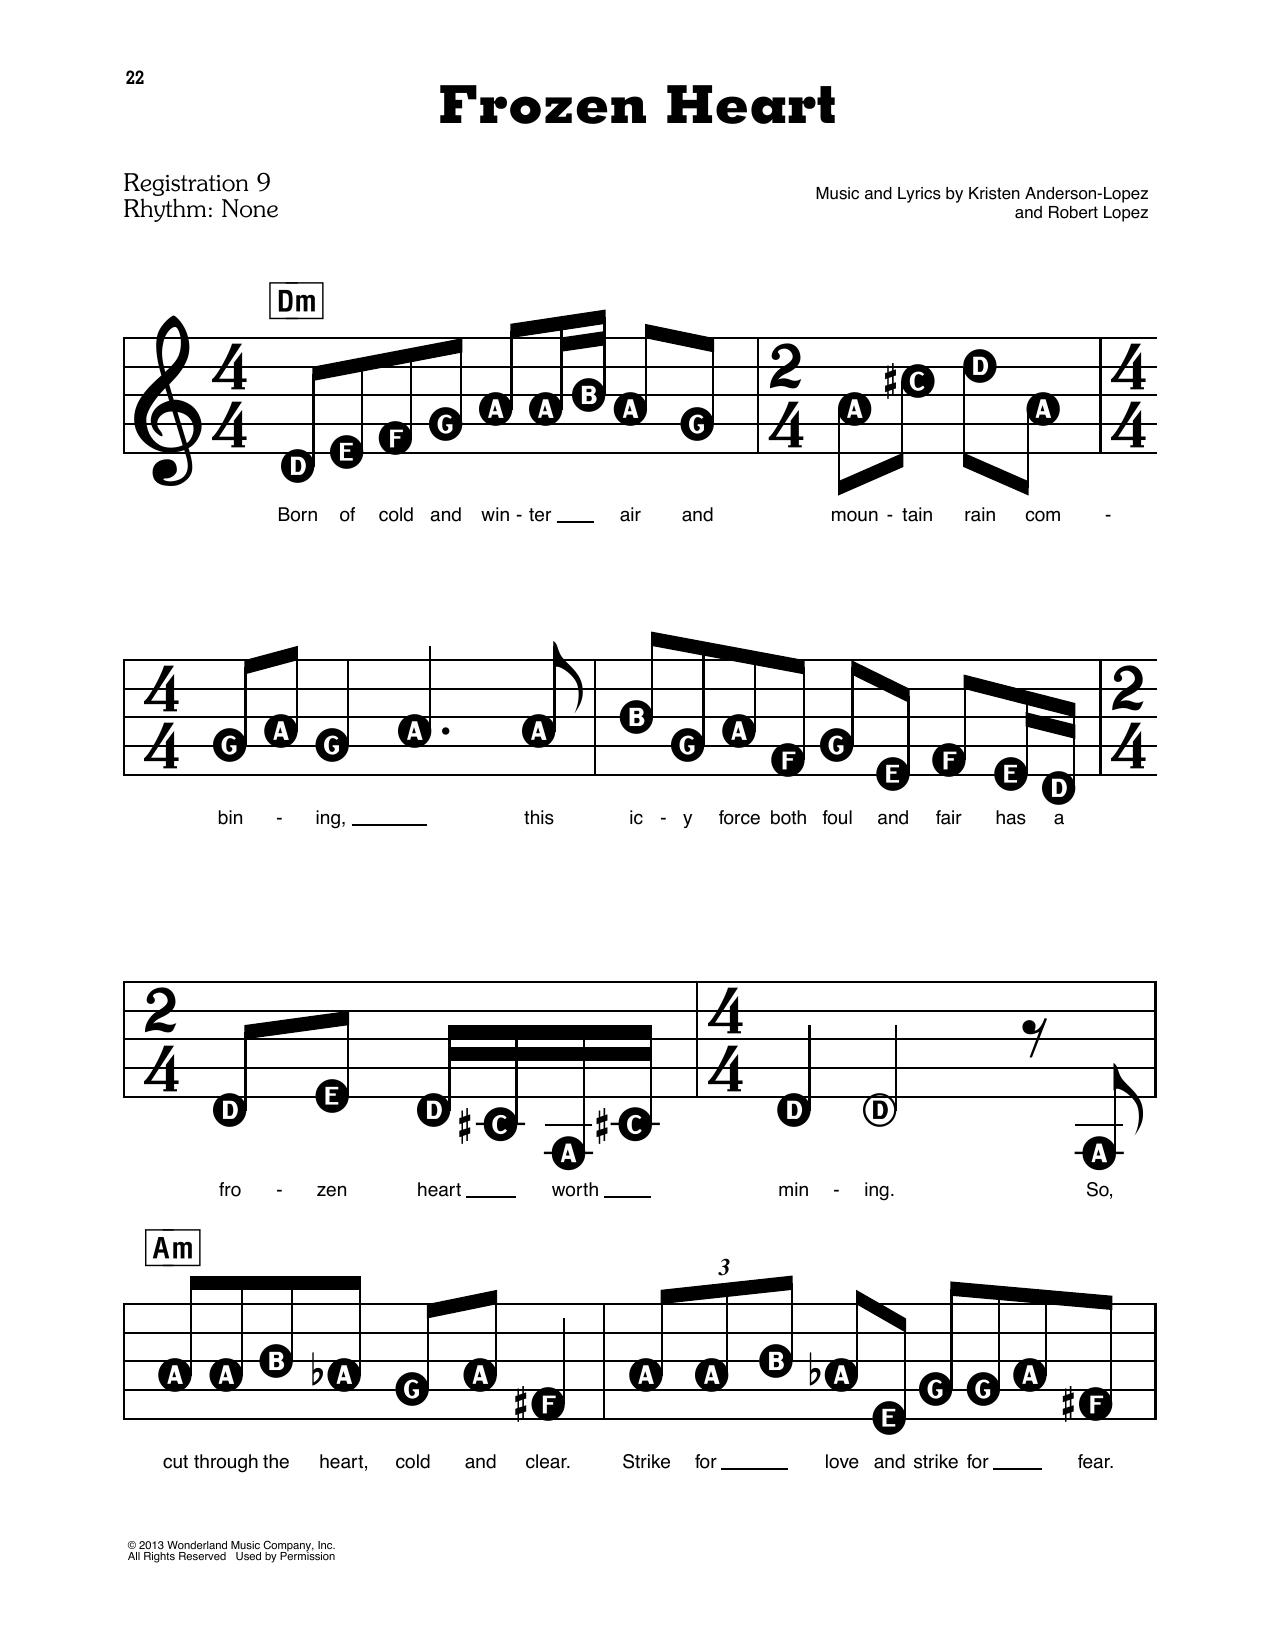 Kristen Anderson-Lopez & Robert Lopez Frozen Heart (from Disney's Frozen) sheet music notes and chords. Download Printable PDF.